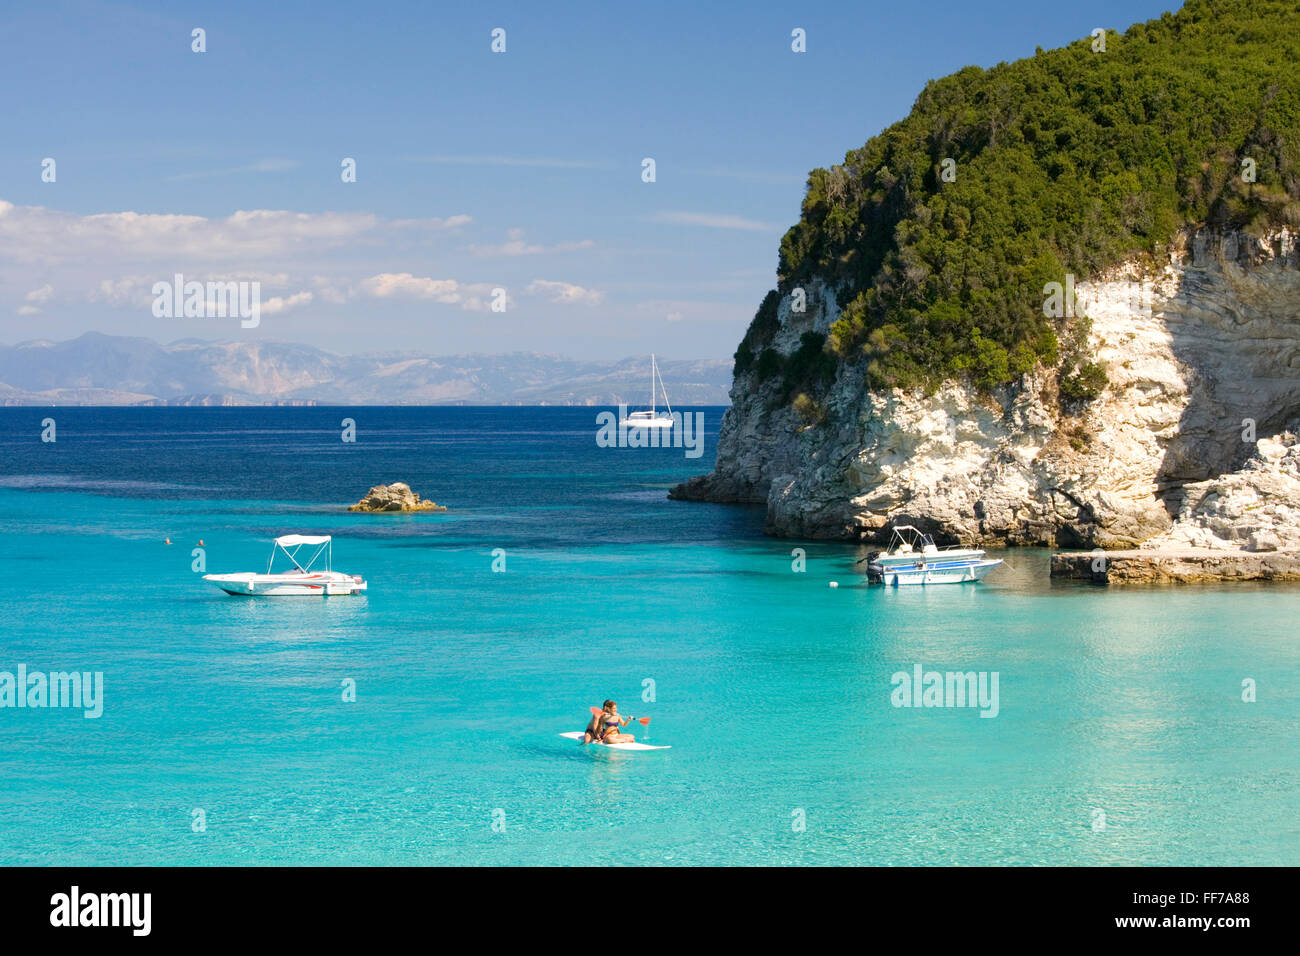 Antipaxos, Ionian Islands, Greece. Couple on paddleboard crossing the clear turquoise waters of Vrika Bay. - Stock Image